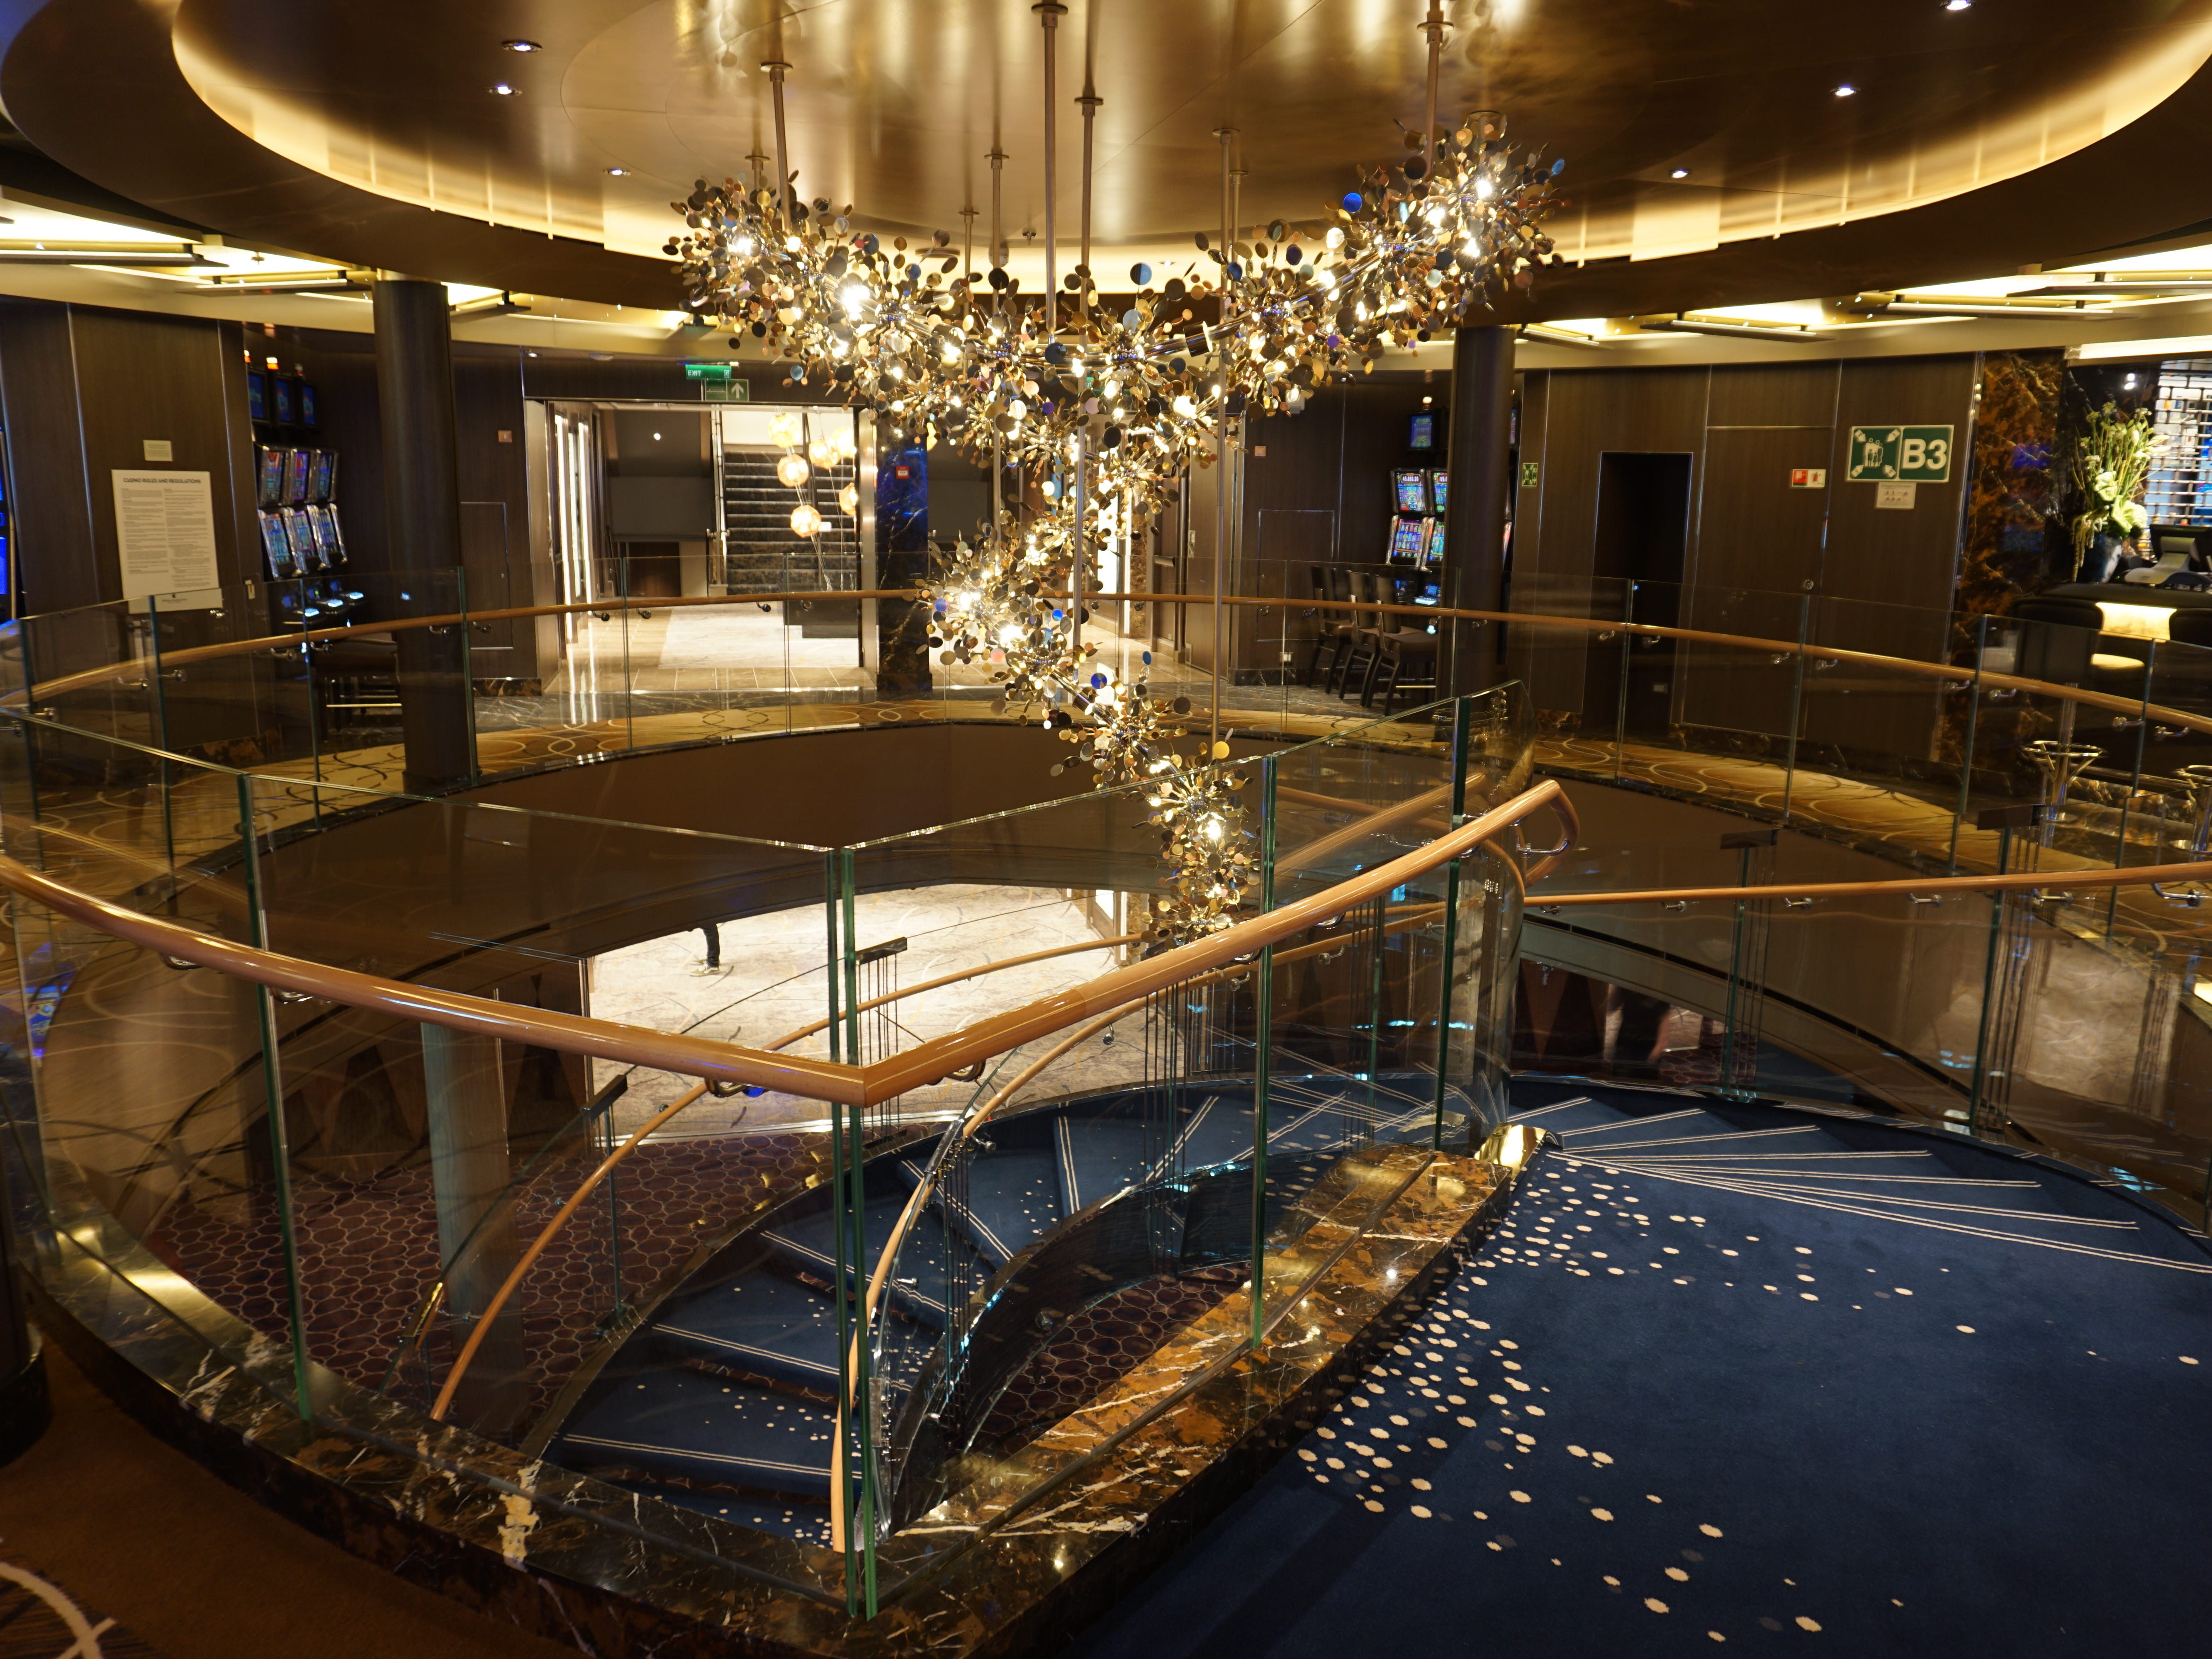 At the forward end of the Casino that follows the World Stage on Deck 3, there is a spiral staircase that connects with the Music Walk entertainment venues on Deck 2.